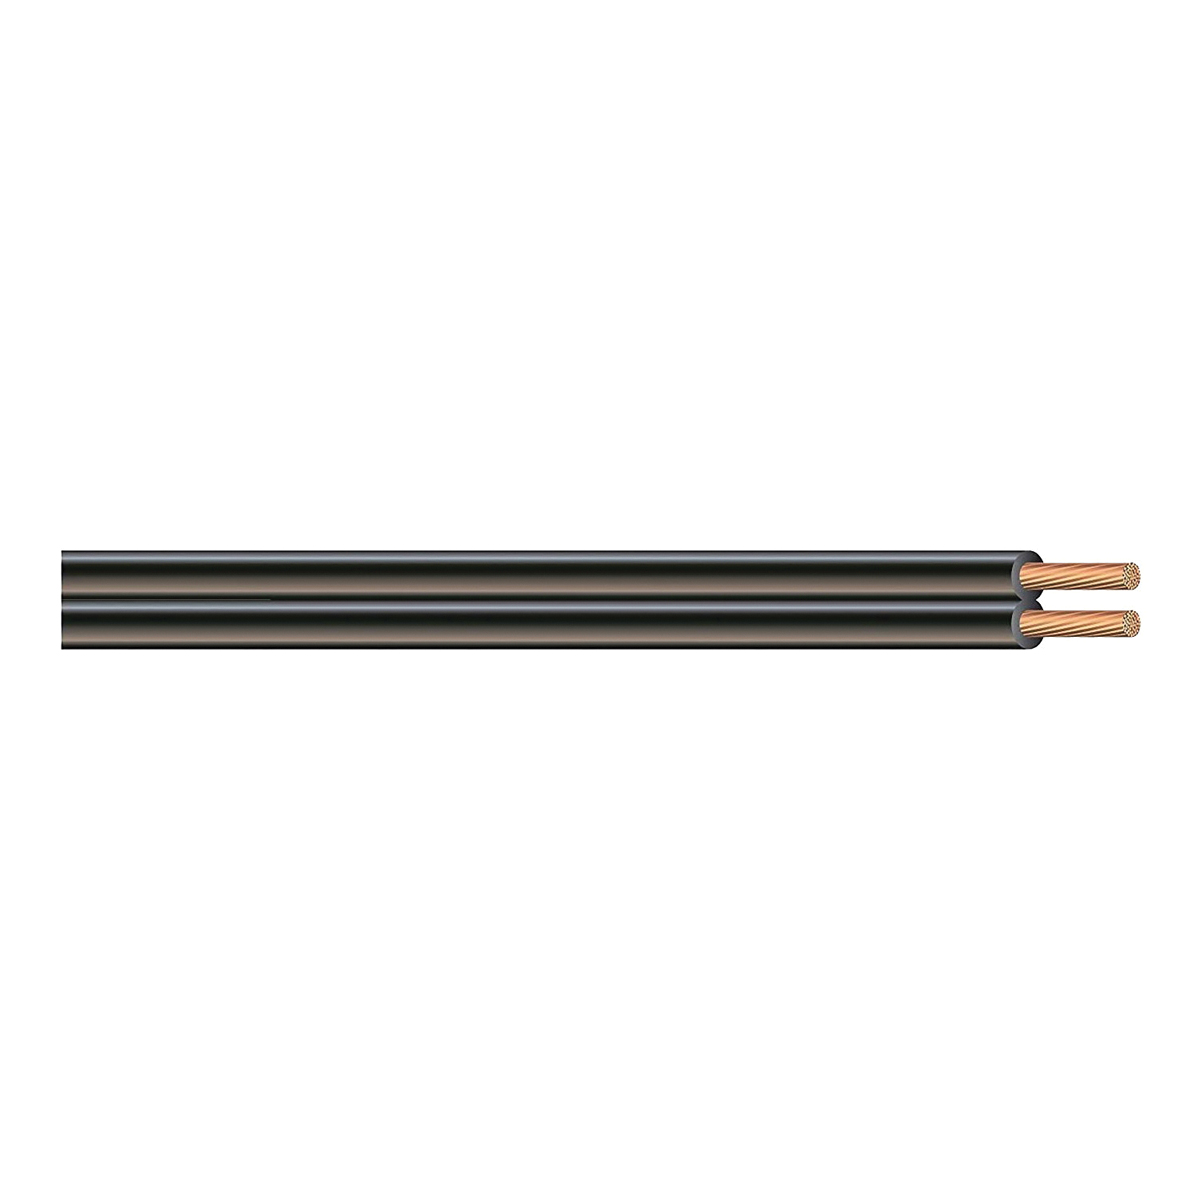 Picture of Southwire 55213443 Electrical Cable, 2-Conductor, PVC Insulation, 150 V